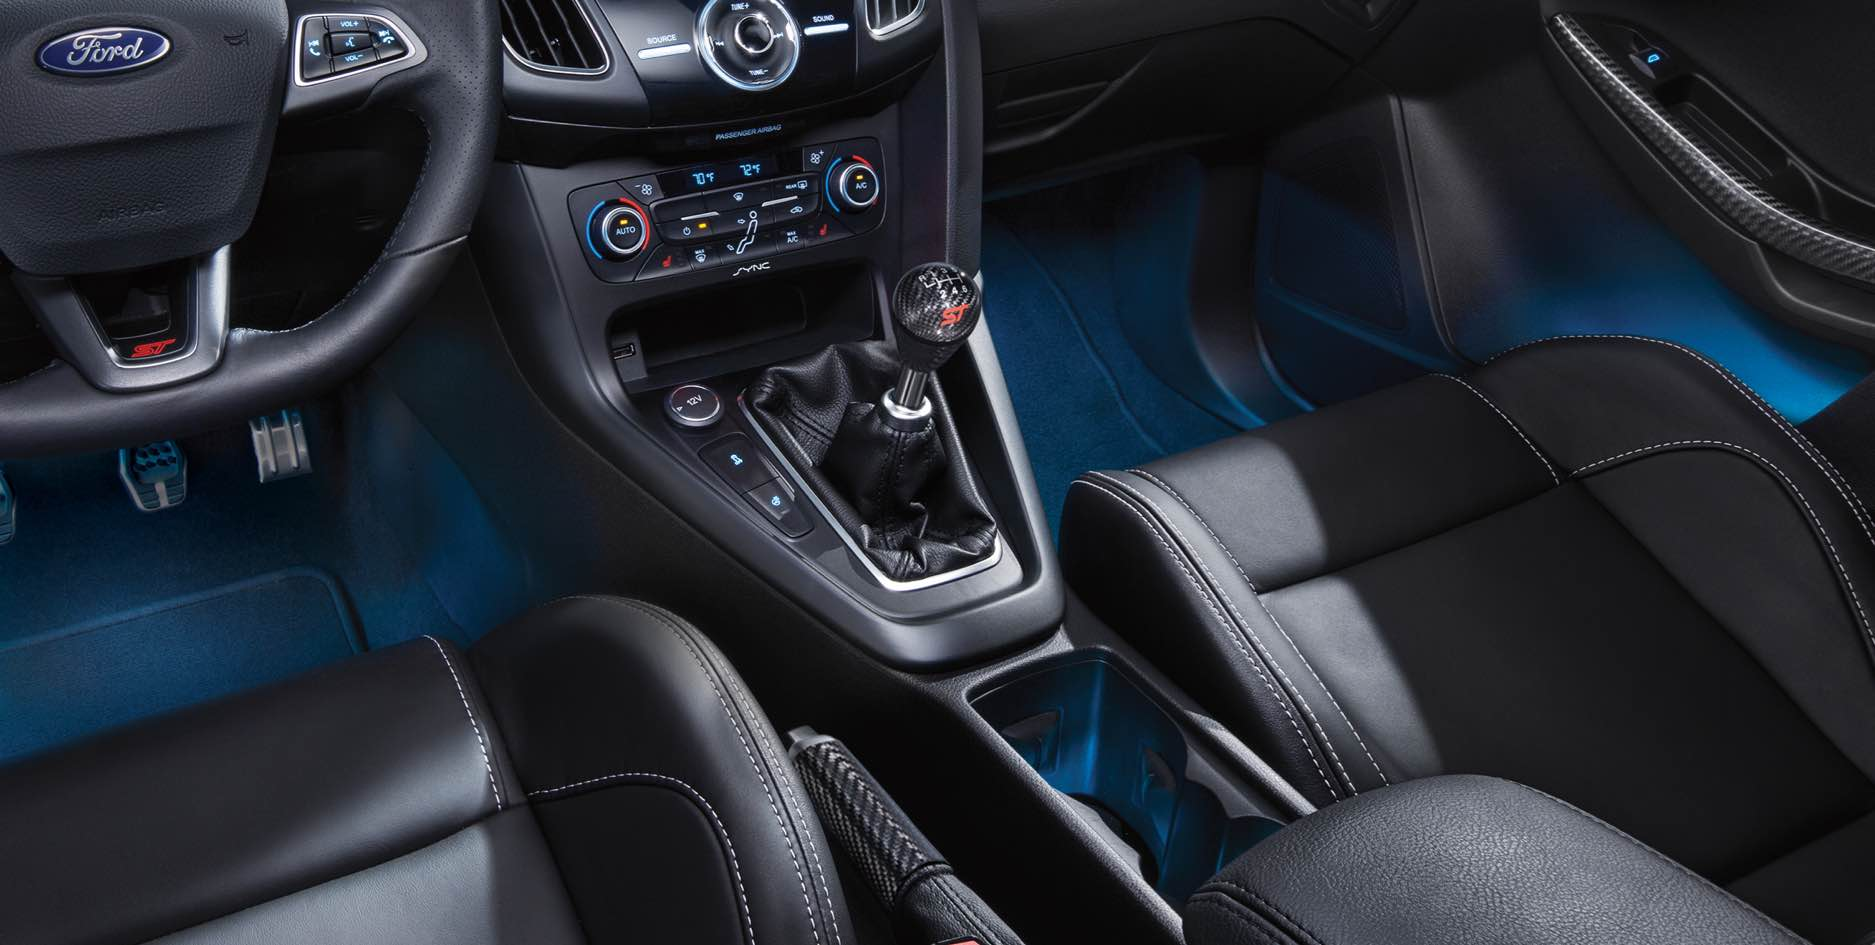 2017 Ford Focus St Front Interior Detail